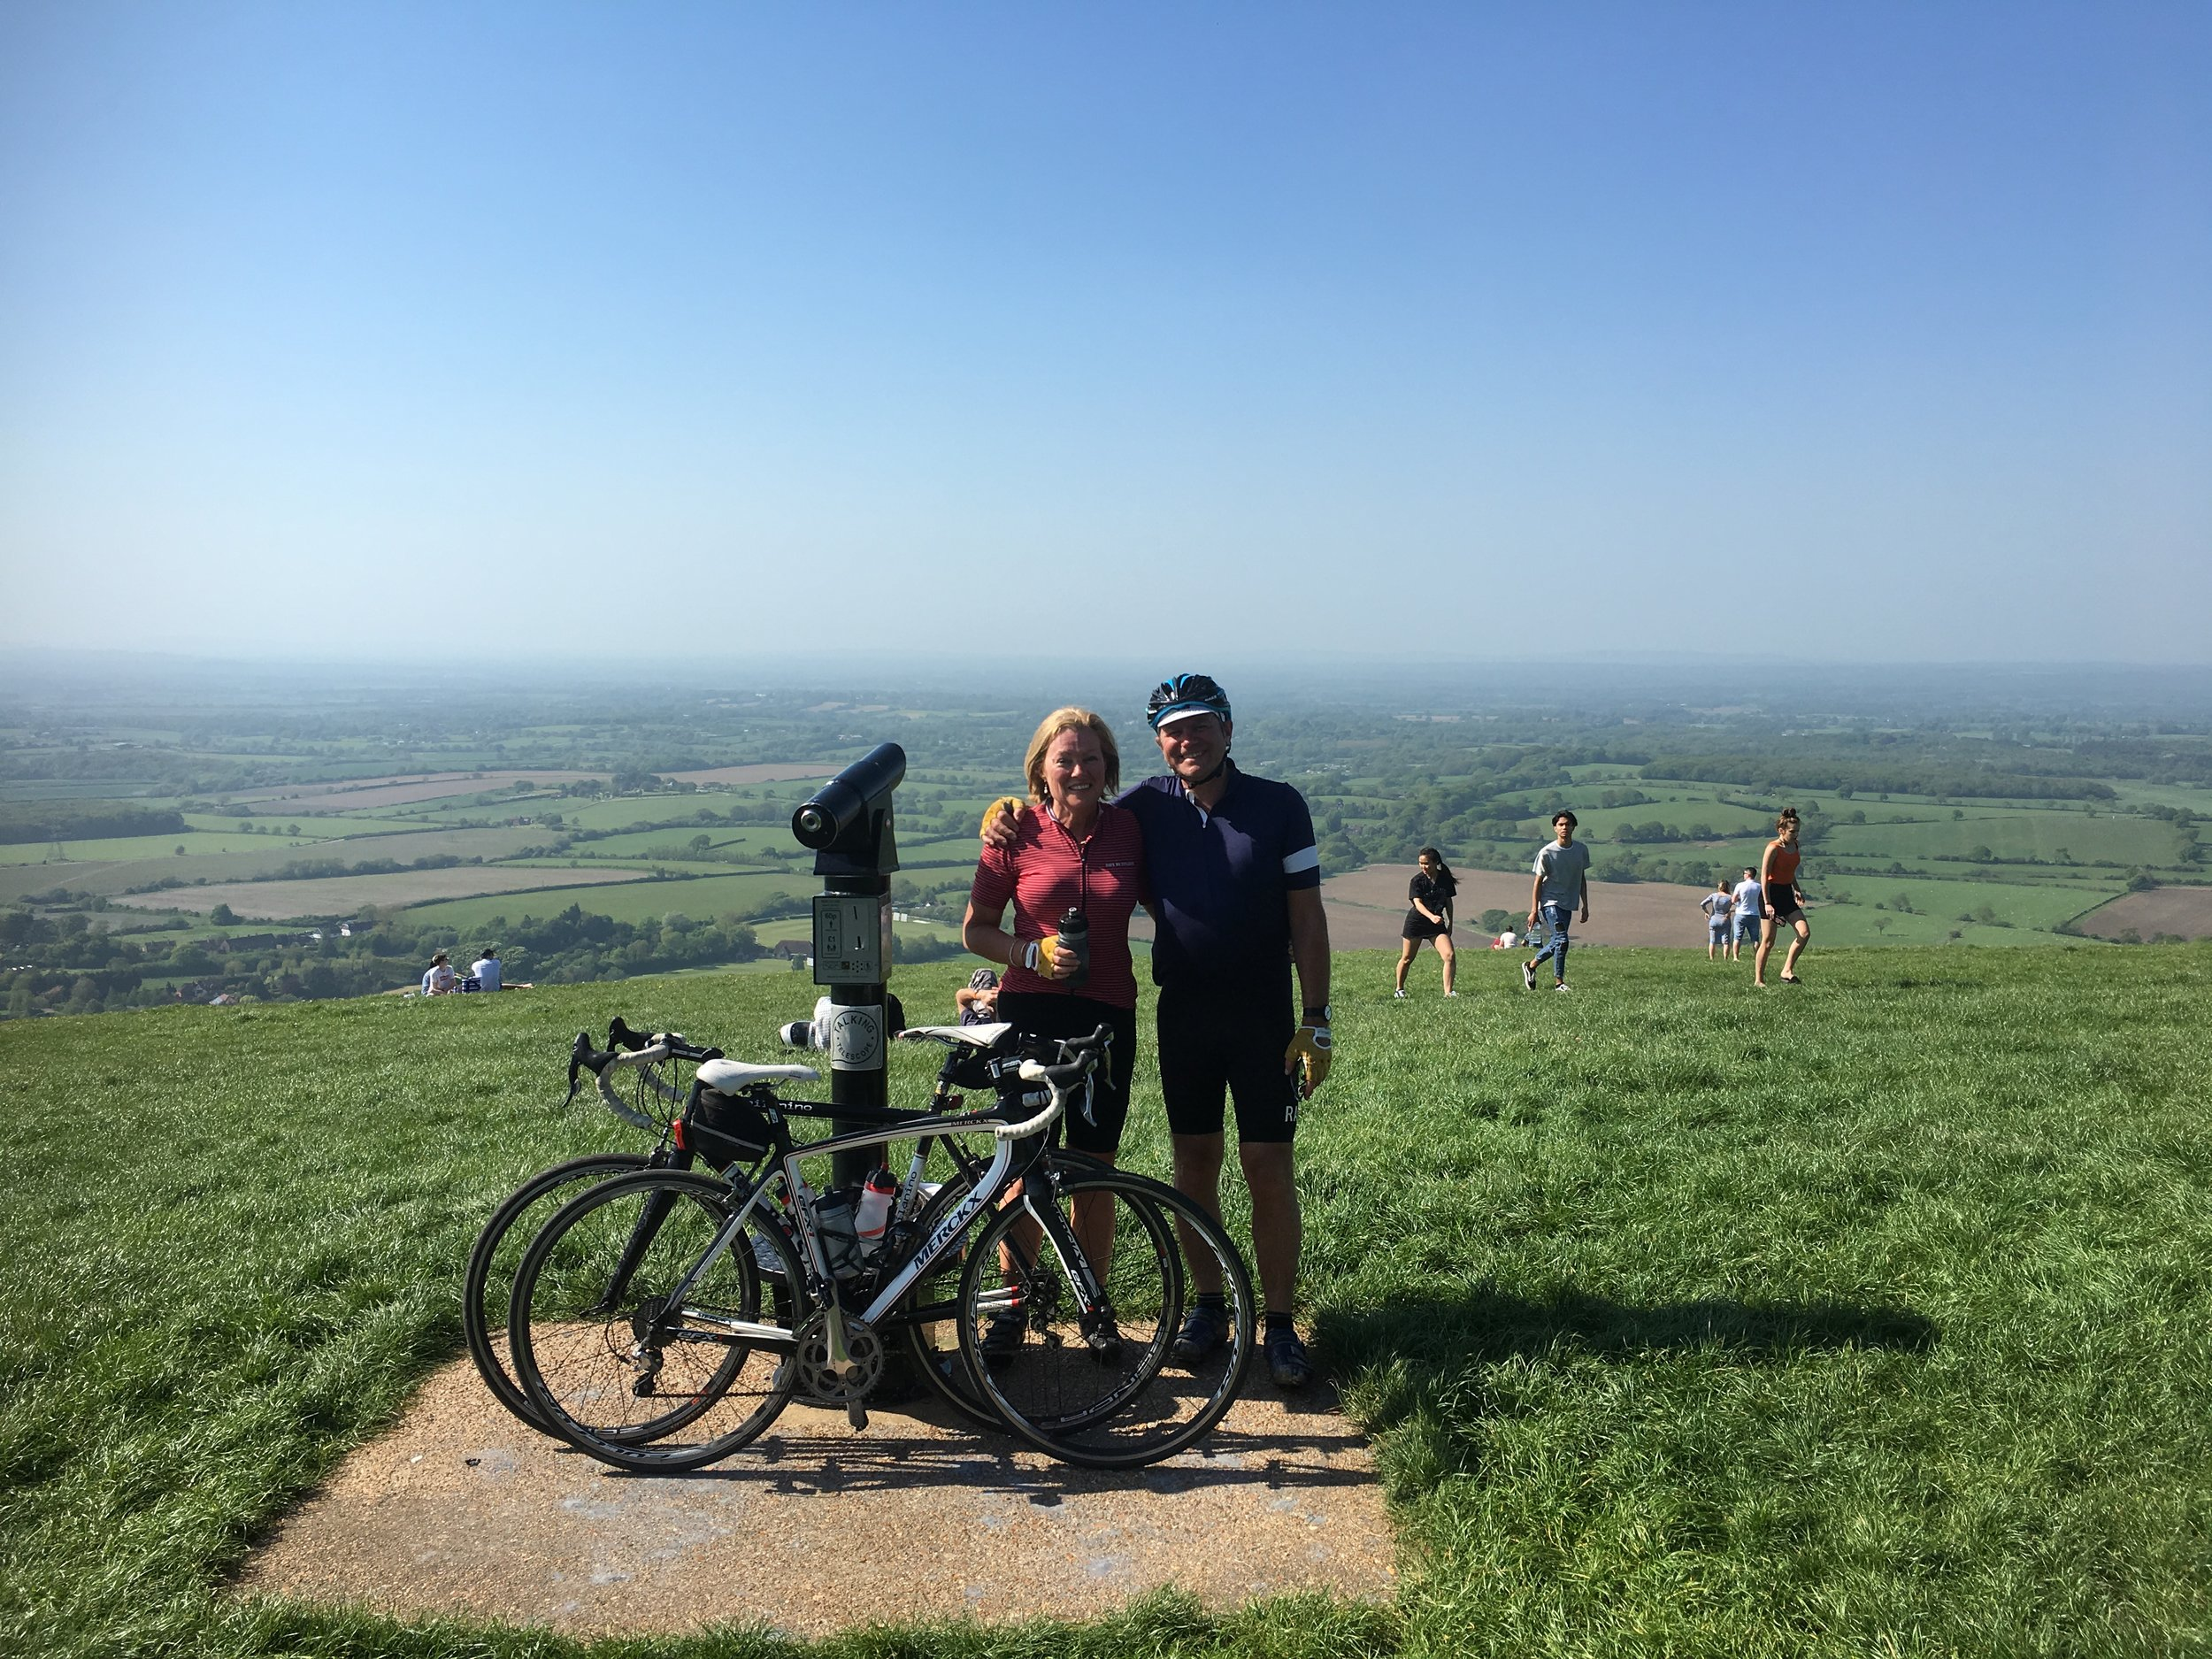 Feeling on top of the world with my favourite bike